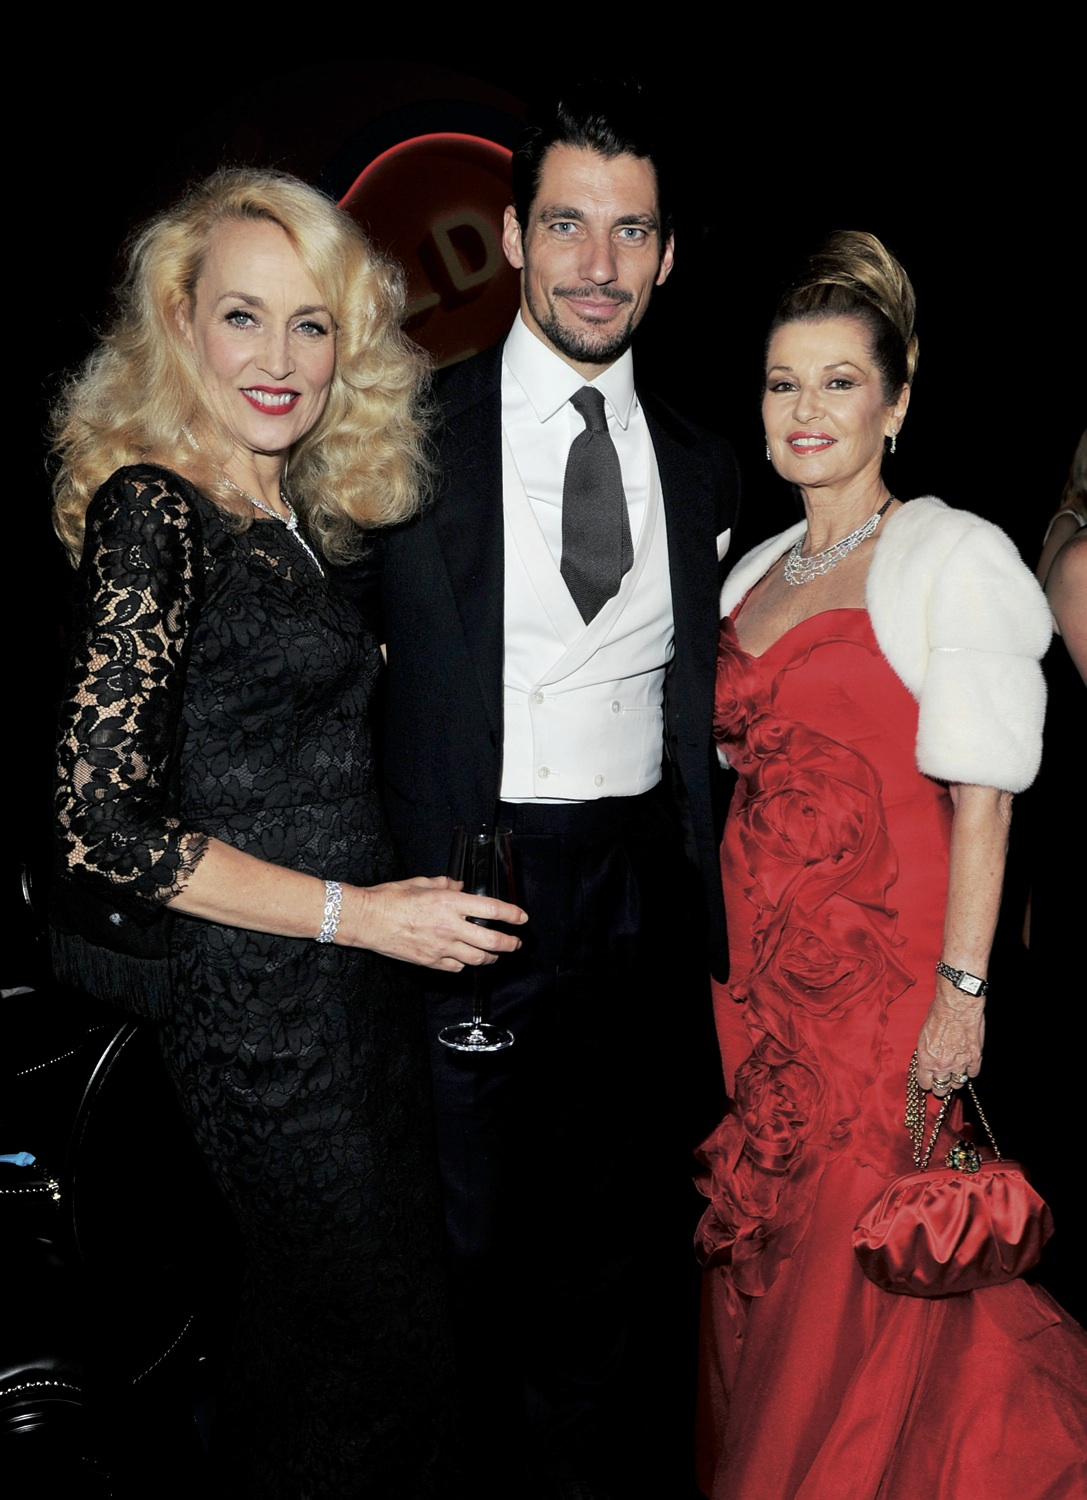 Jerry Hall, David Gandy and Eva Cavalli in Chopard.